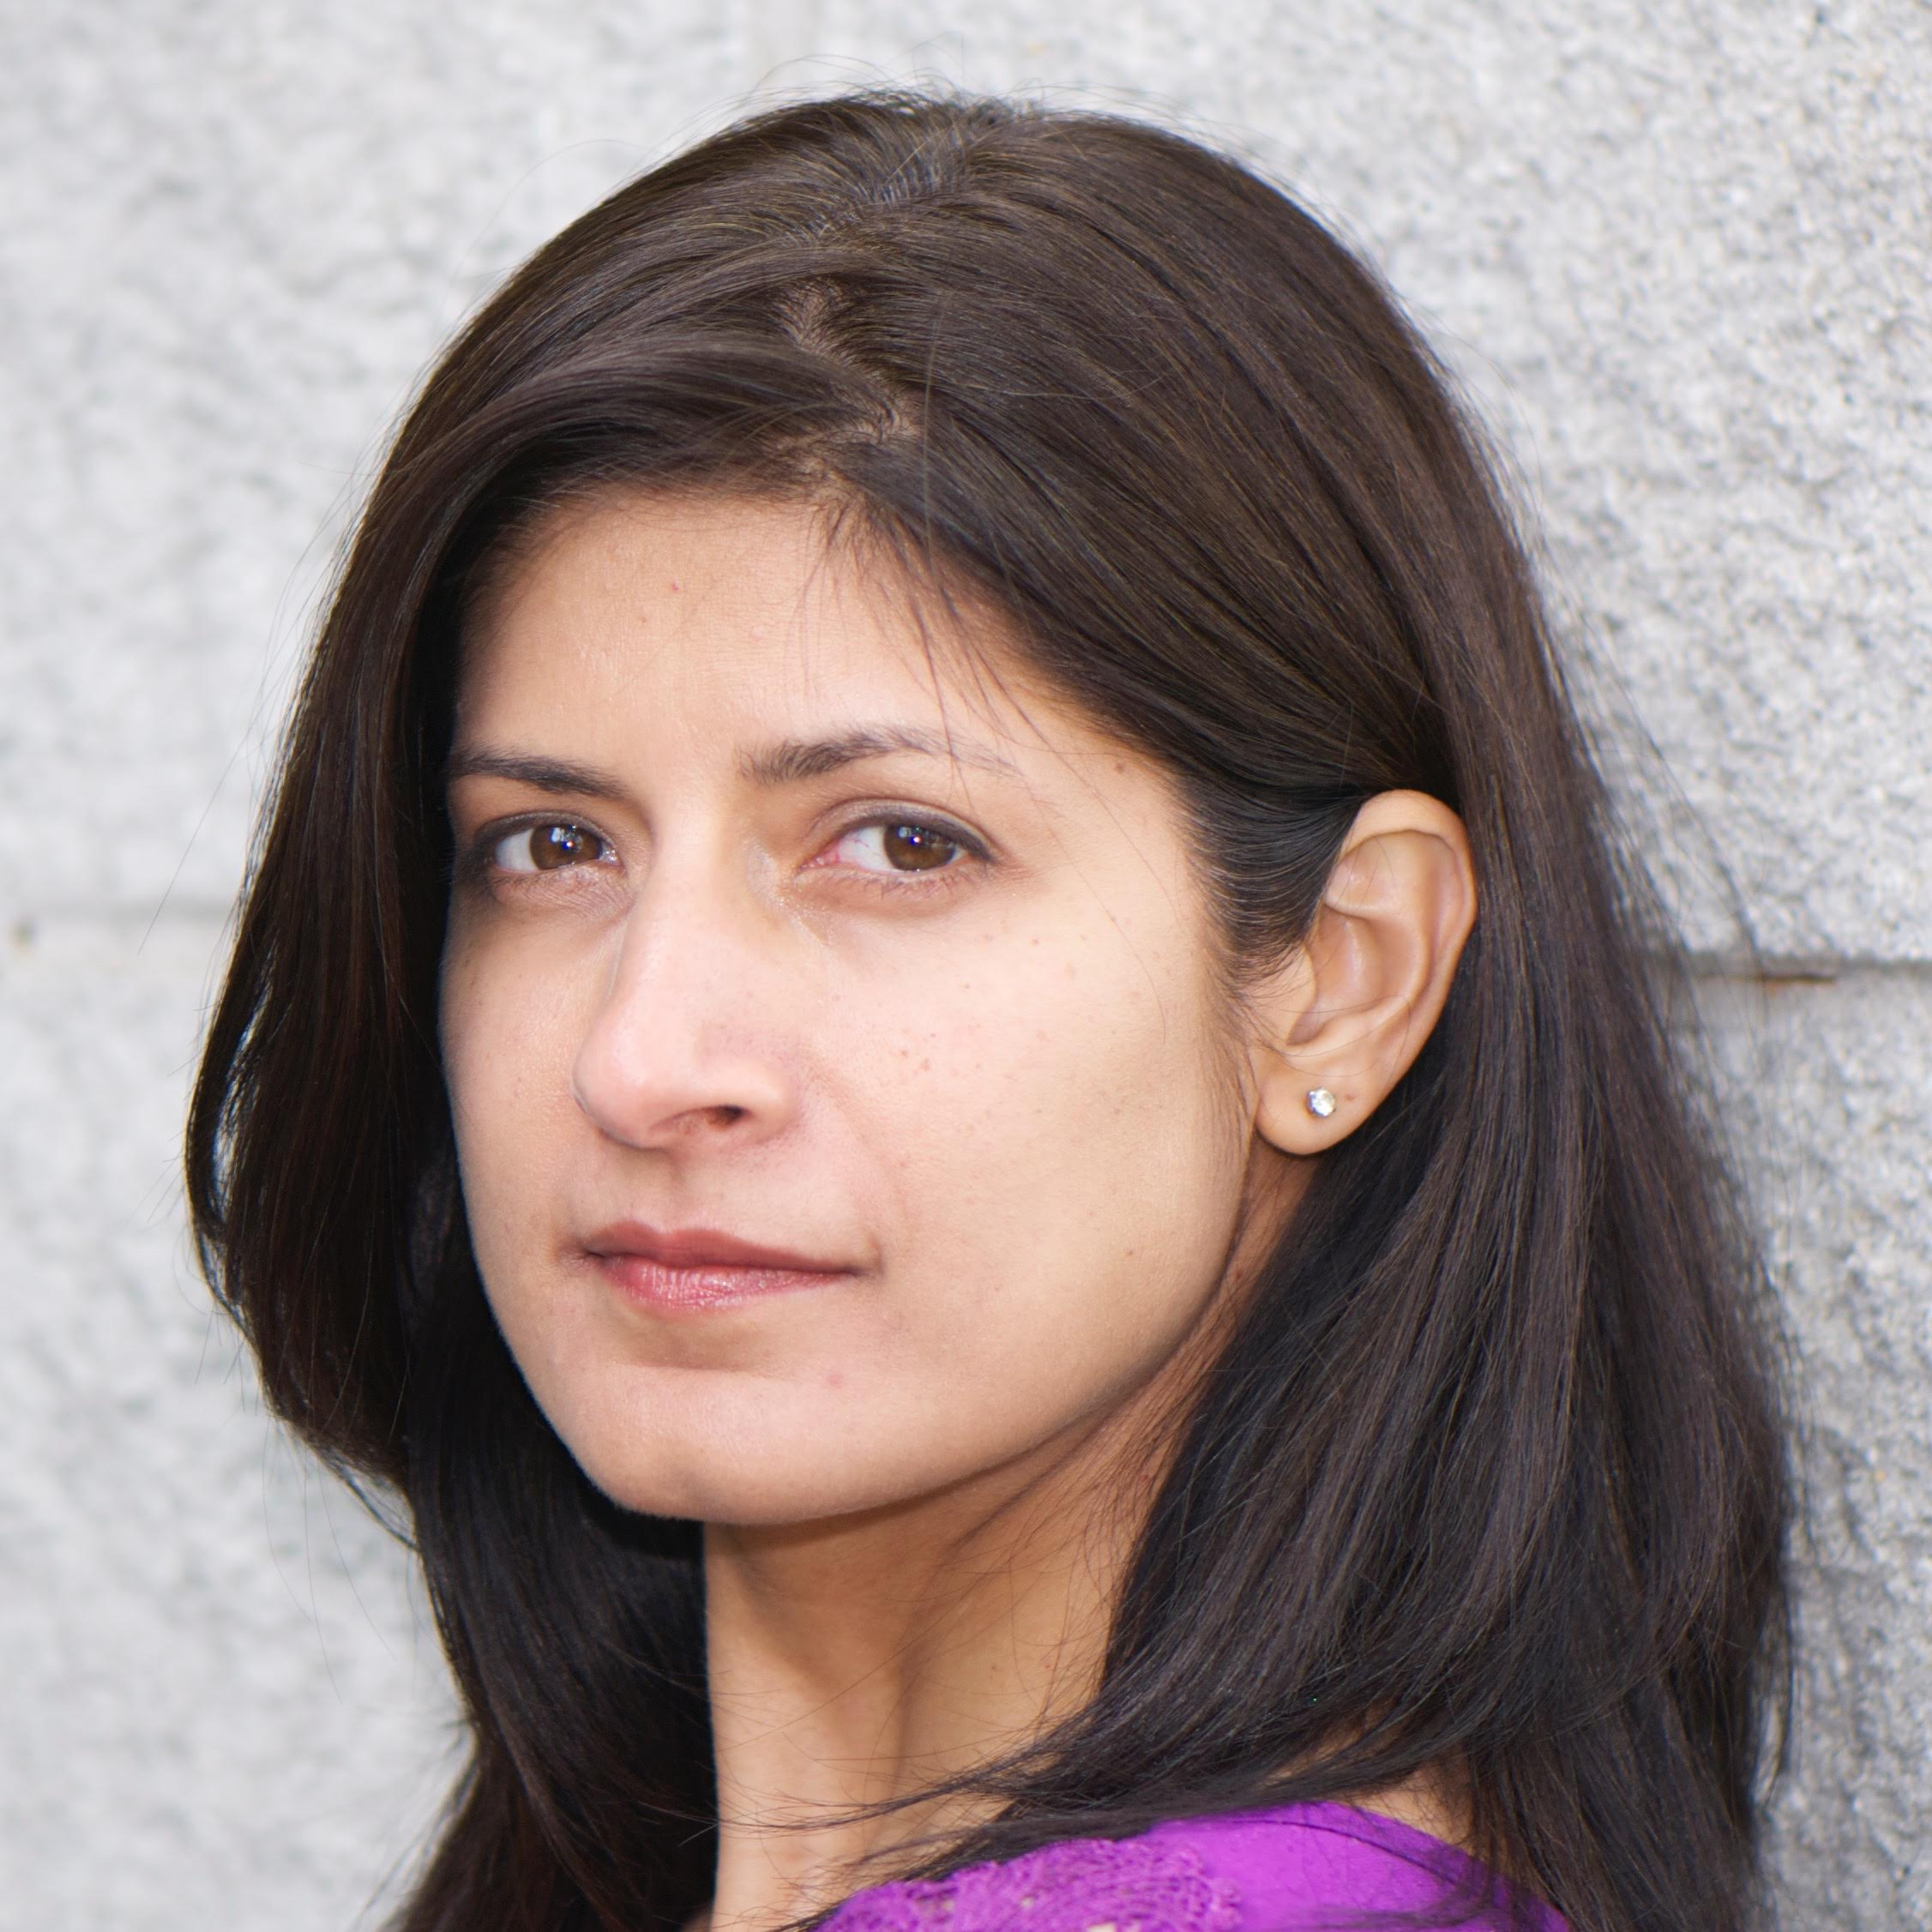 SHRUTI SEKHRI    Having studied at Act One, Black Box, Second City, and iO, Shruti has learned to use her equally left-right brain and adventurous heart to dig into her roles with honesty and dedication. Shruti works as a management consultant who loves spreadsheets, painting, dancing, and a healthy dose of singing (in the shower).